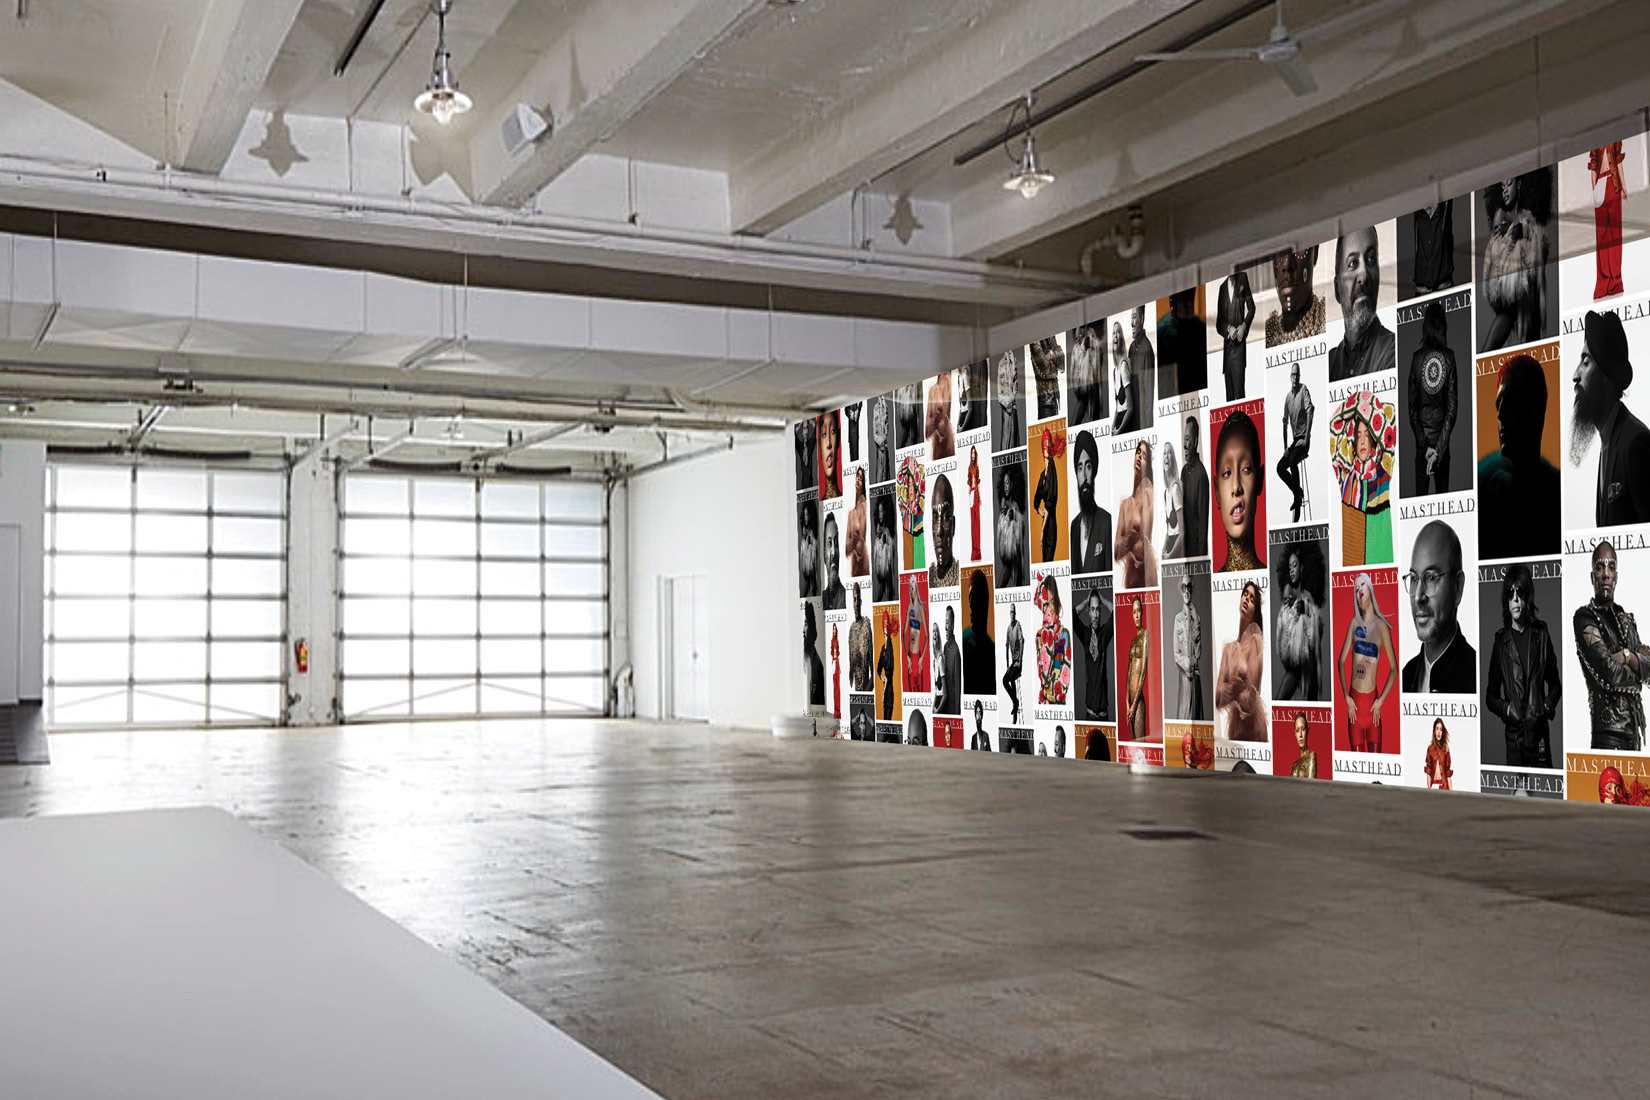 Retail experience in a warehouse created by DTE Studio.